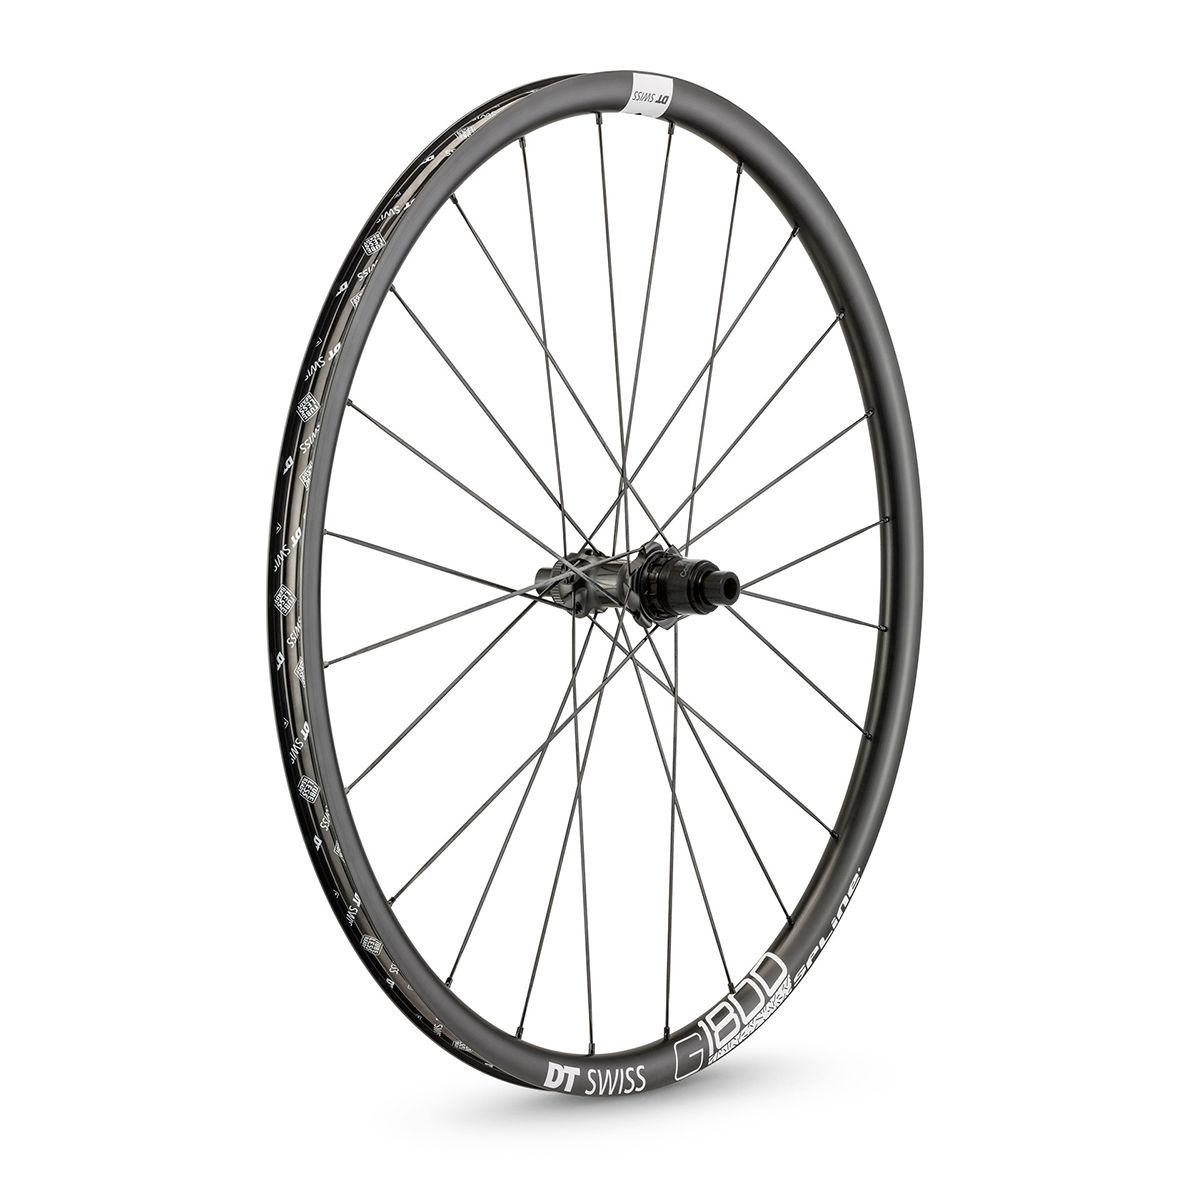 DT Swiss G 1800 SPLINE® 25 SRAM XDR™ DB Road/Cross/Gravel Rear Wheel | Rear wheel